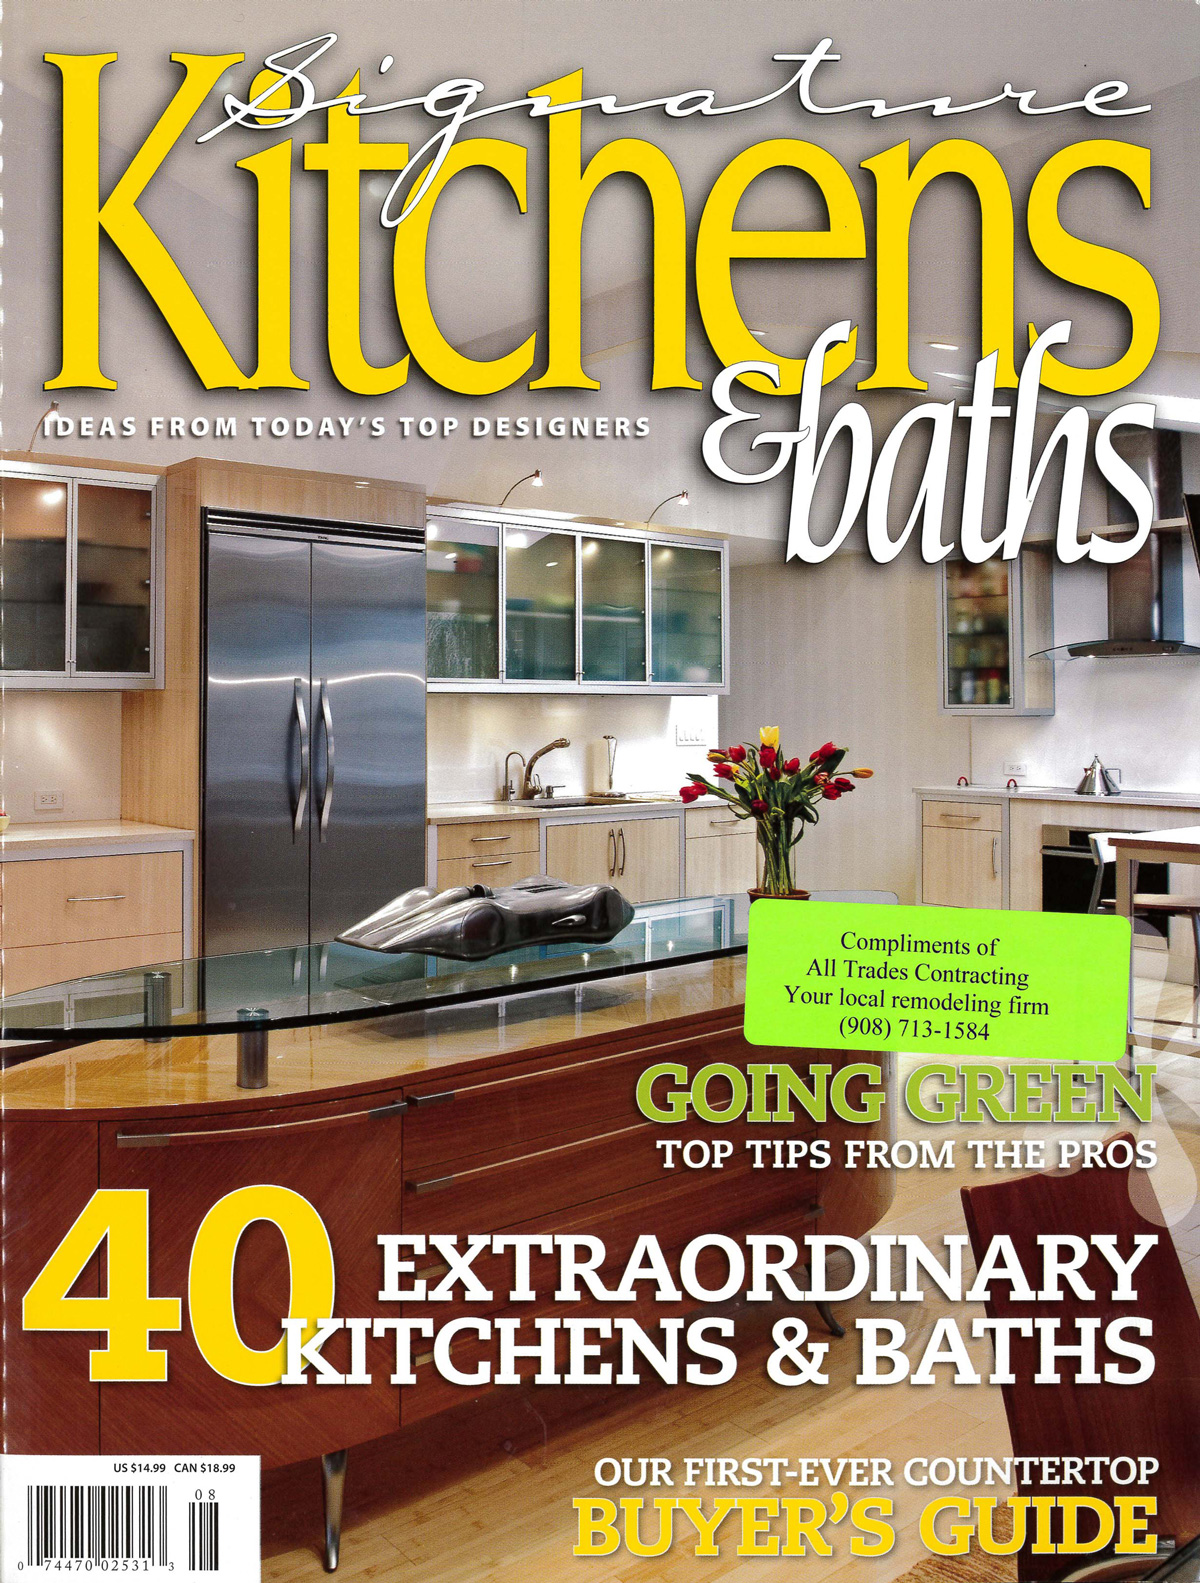 Signature Kitchen & Bath Ideas,Summer 2007